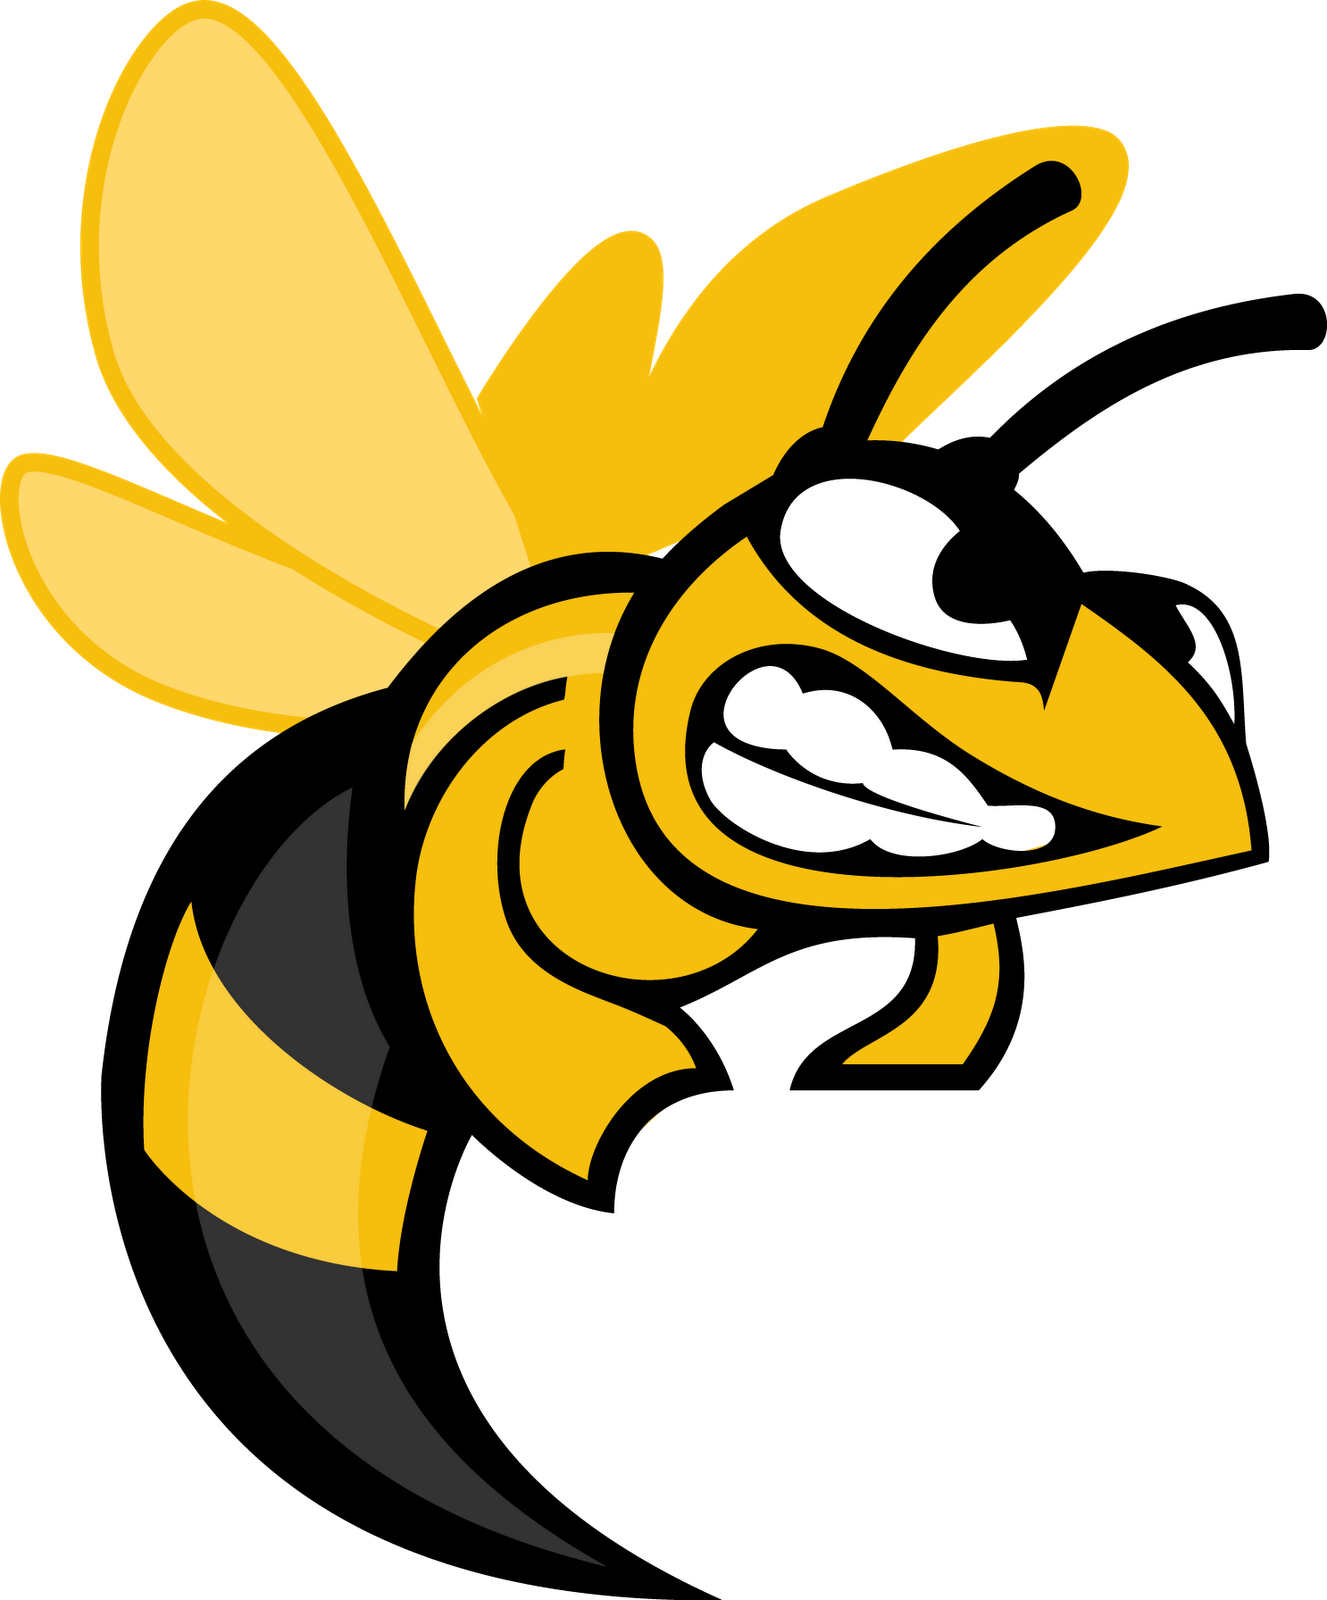 svg download Bumblebee clipart mean to bee. Image result for wasp